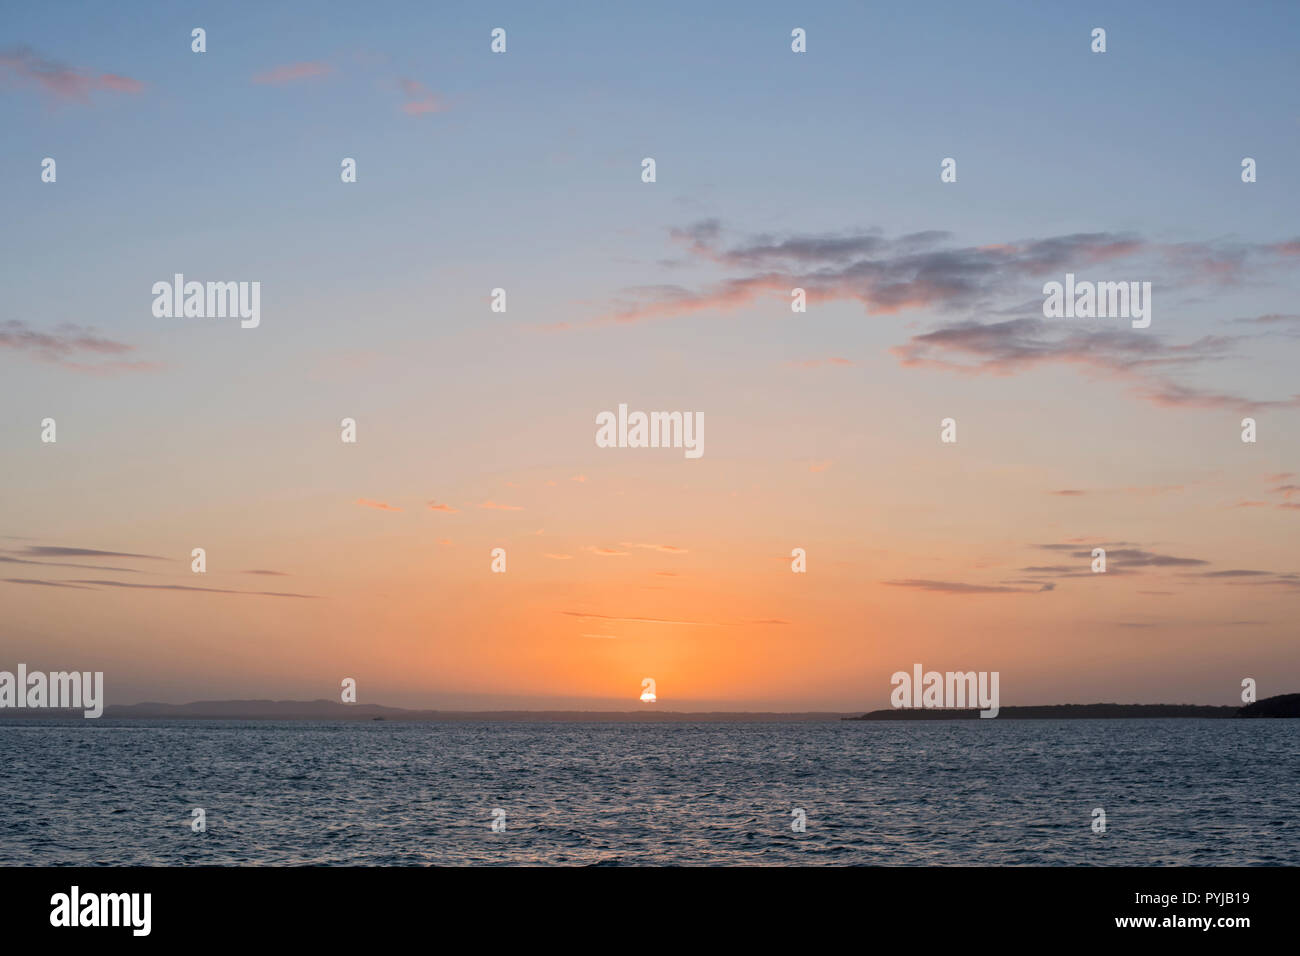 Beautiful Sunset night sky with very distant view of Brisbane as seen from Moreton Island, Queensland, Australia. - Stock Image